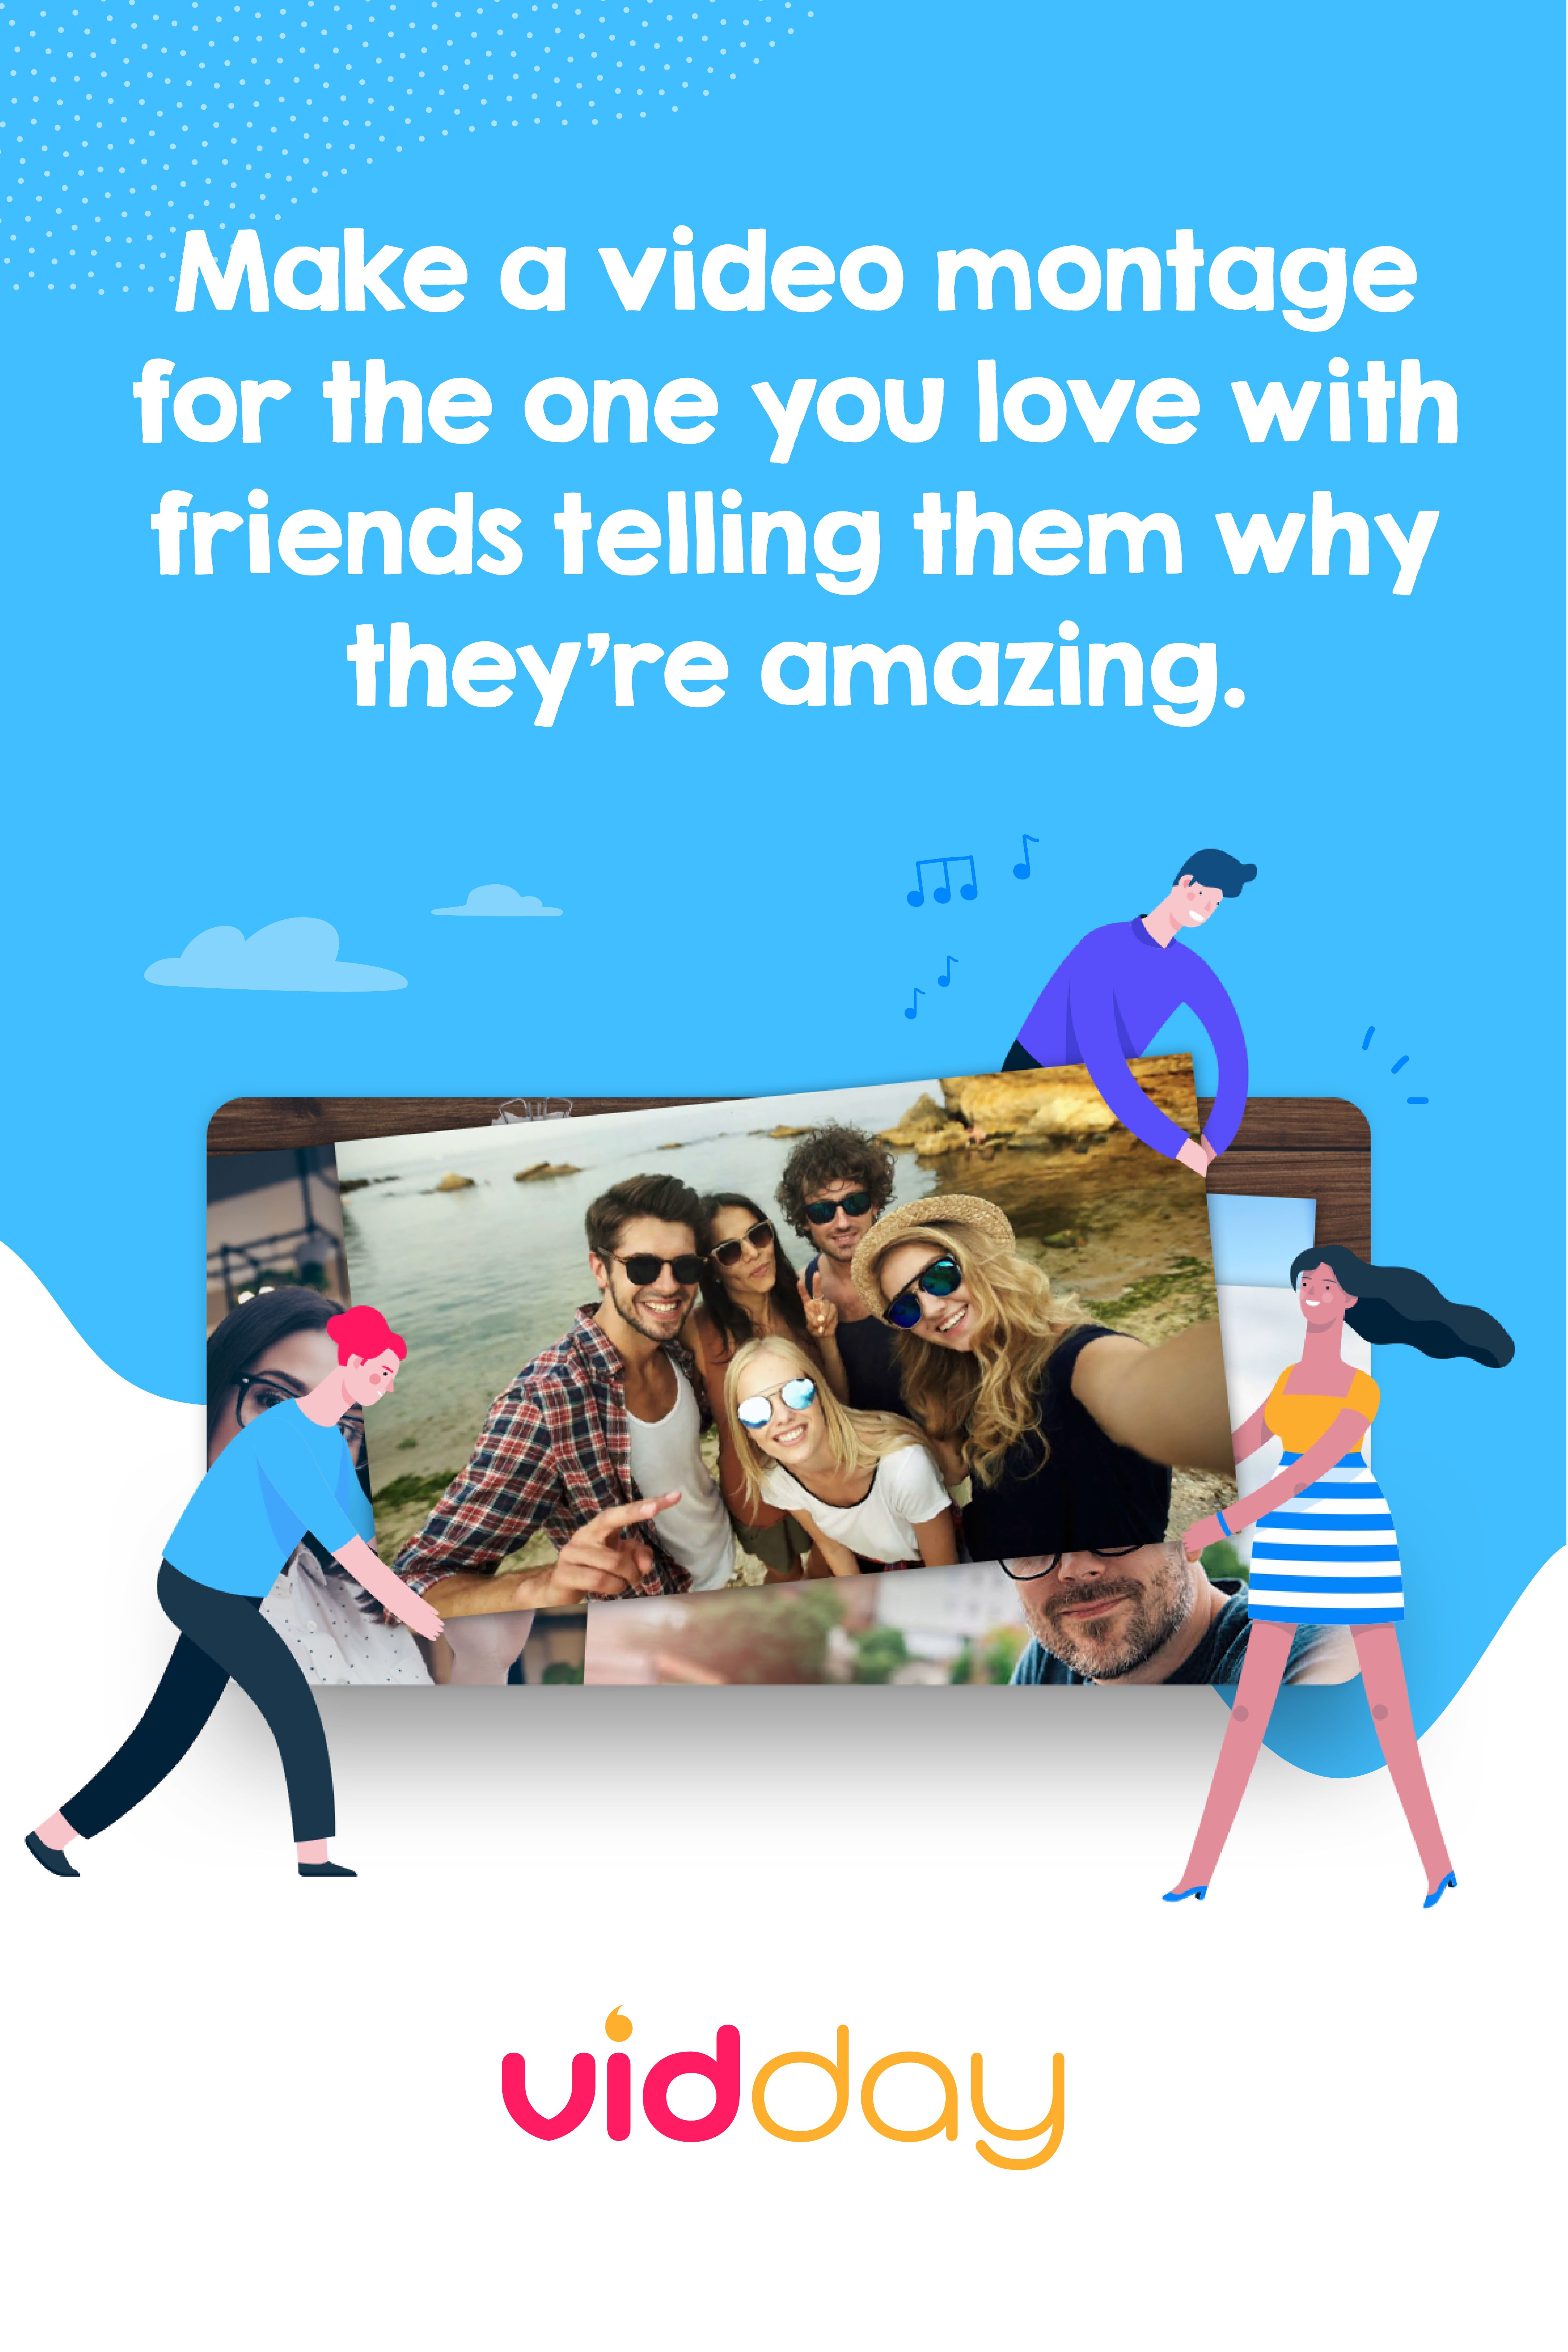 Its like a group greeting card but with video messages